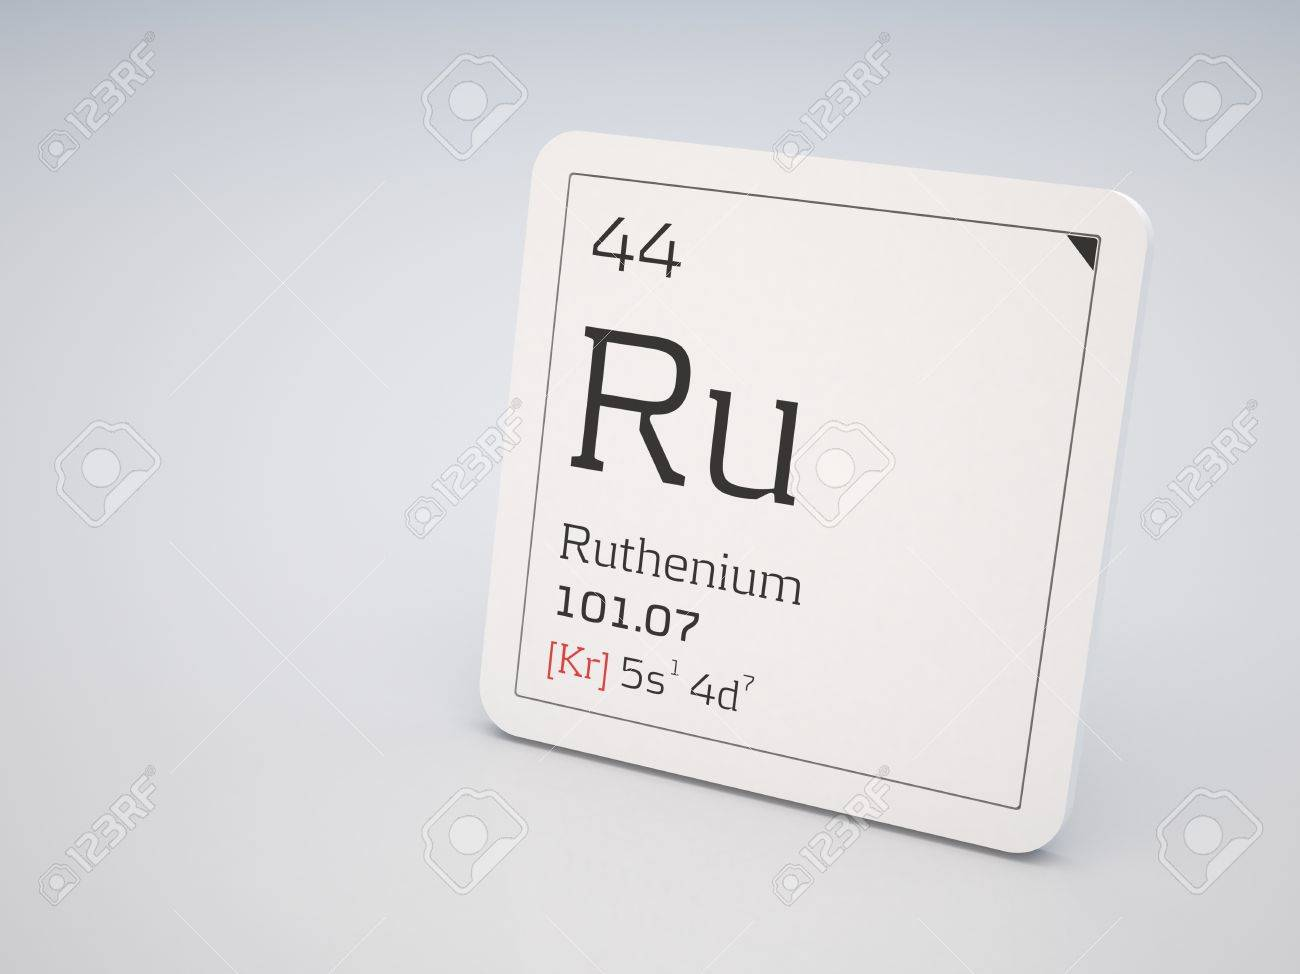 Ruthenium periodic table choice image periodic table images ruthenium element of the periodic table stock photo picture and ruthenium element of the periodic table gamestrikefo Choice Image